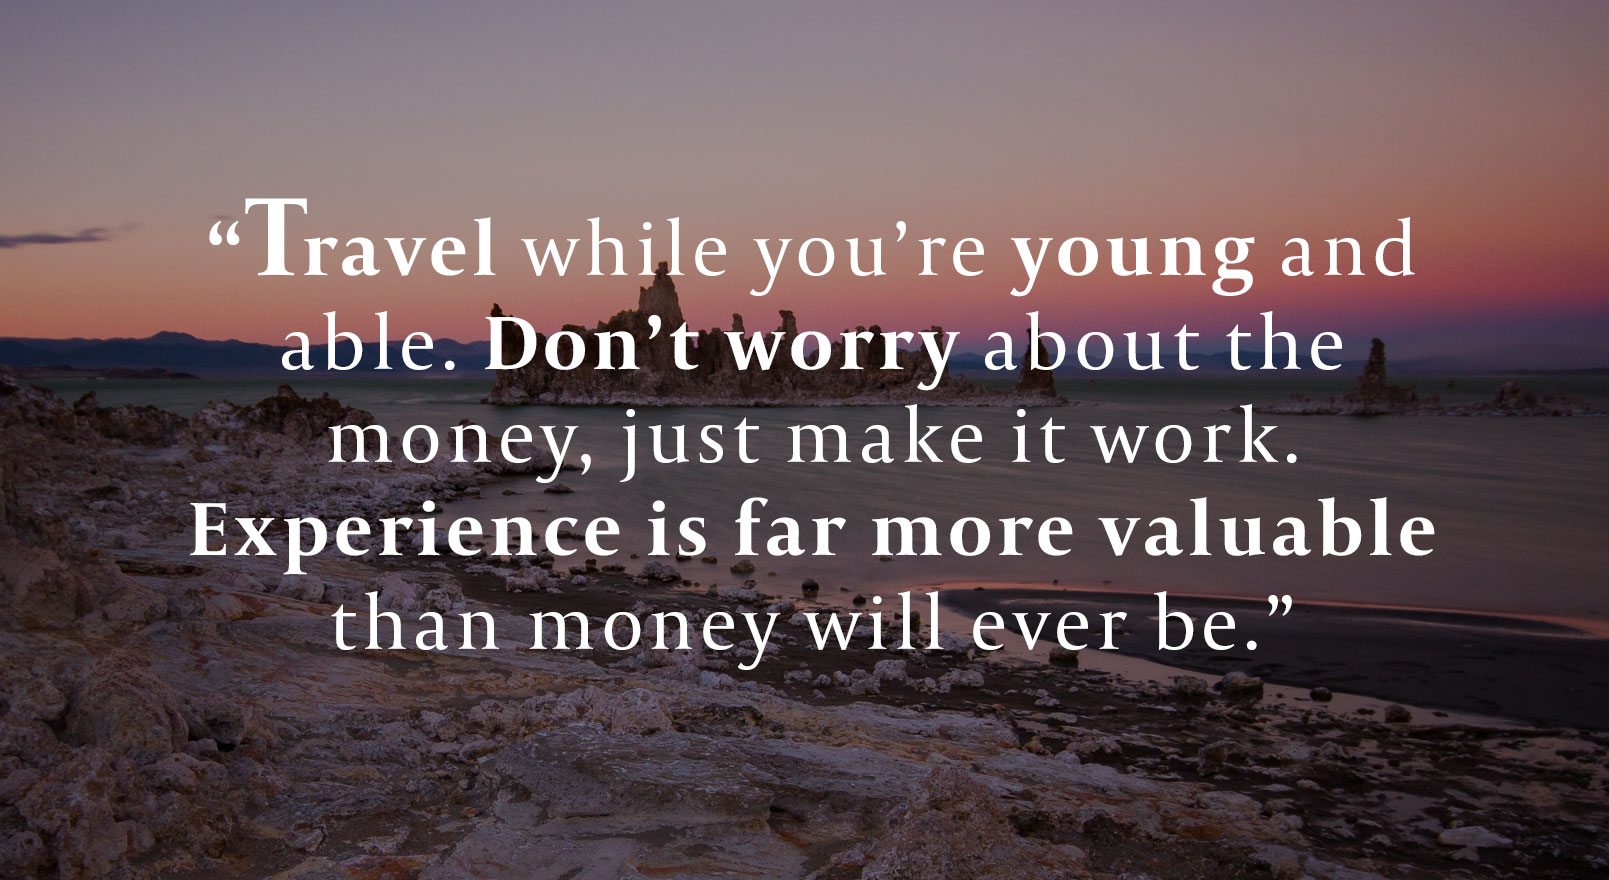 6 Inspirational Travel Quotes